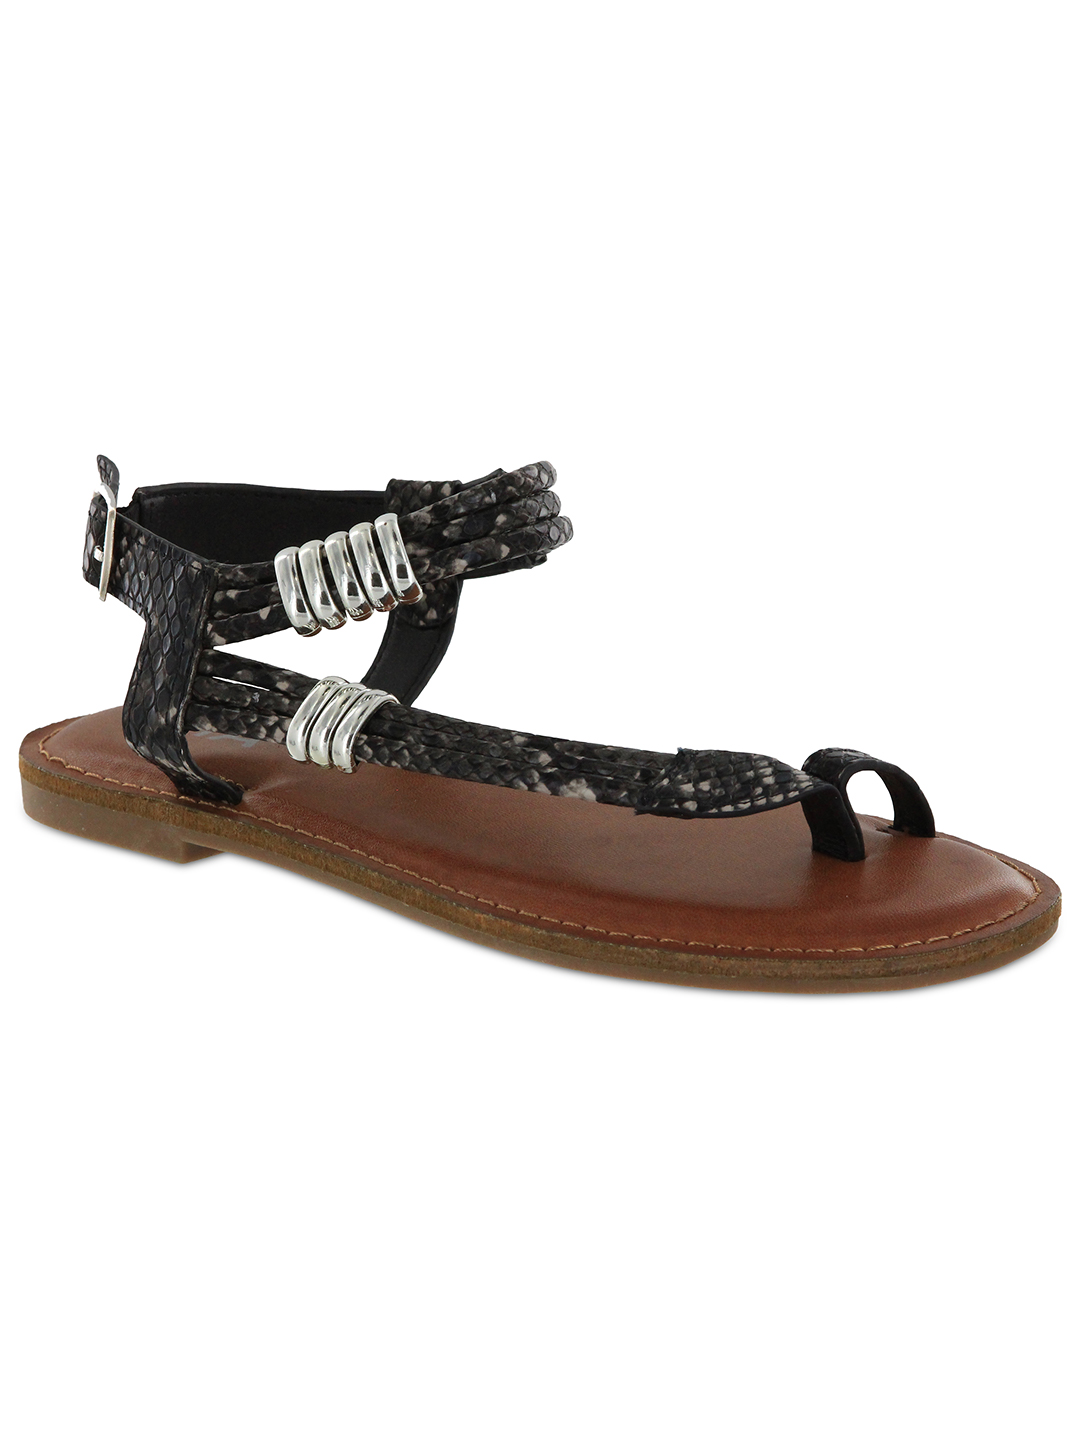 Mia Julianna Sandal - Black Multi - Front